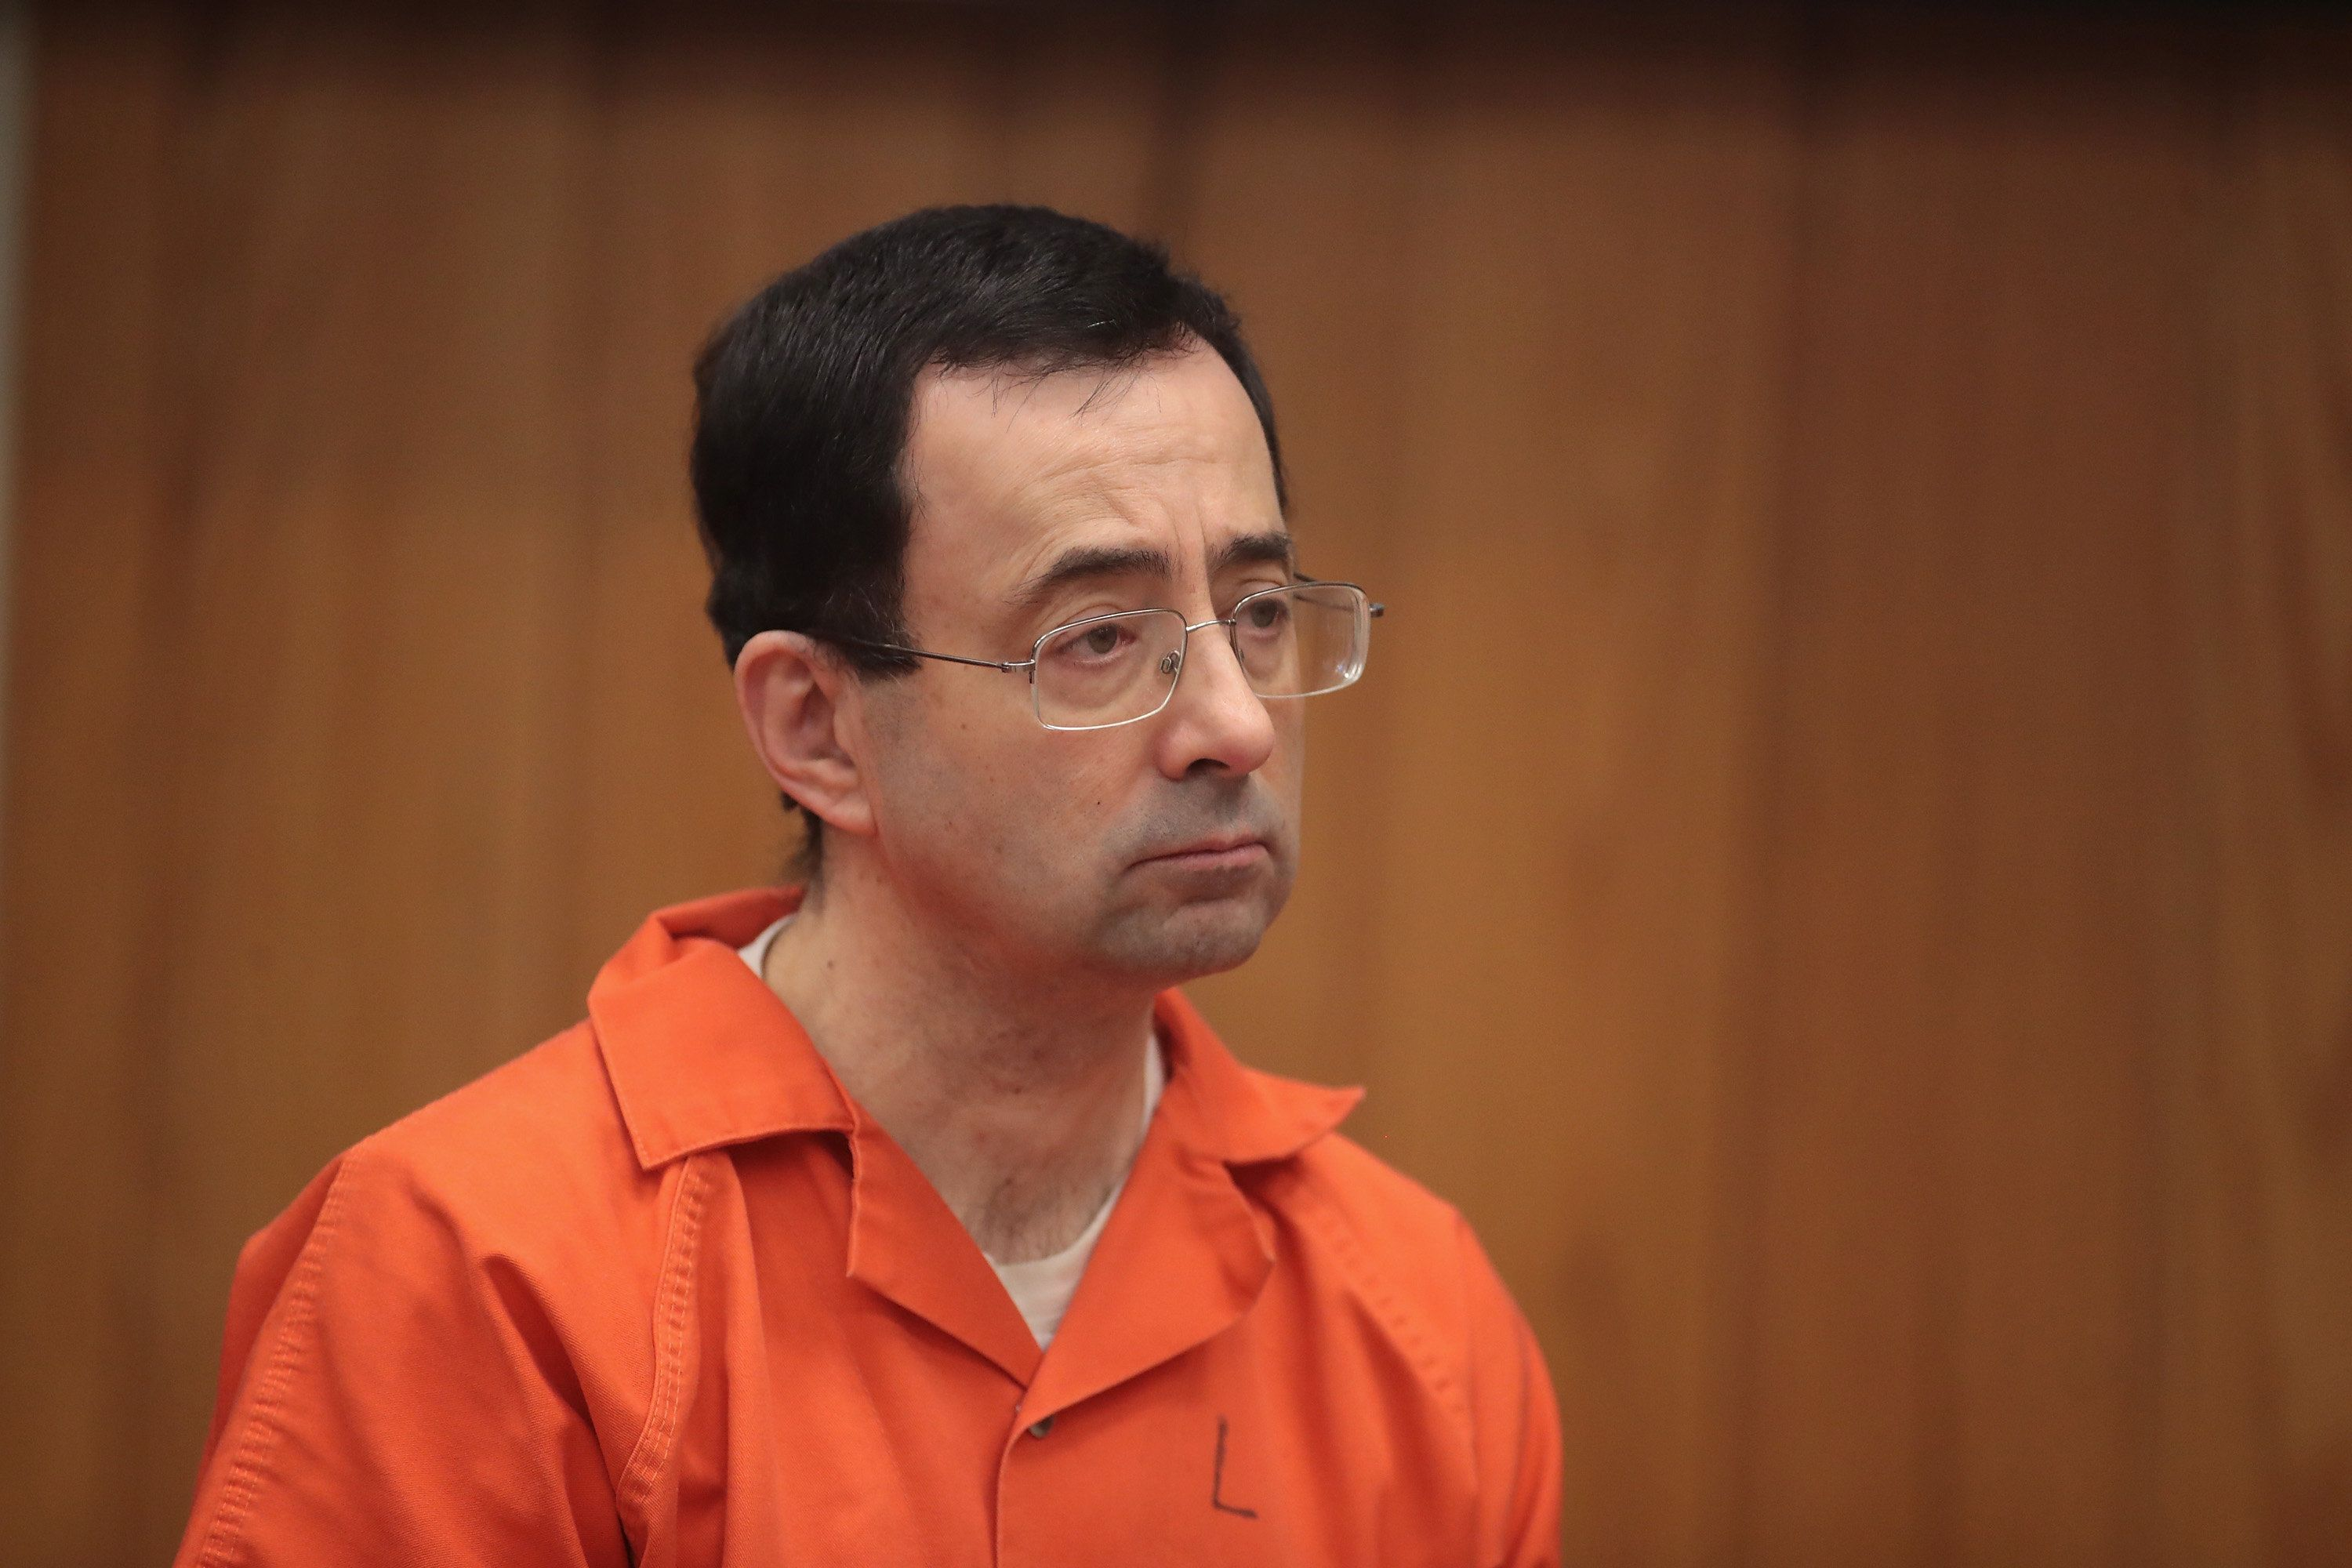 $500M settlement reached between Michigan State and Nassar victims